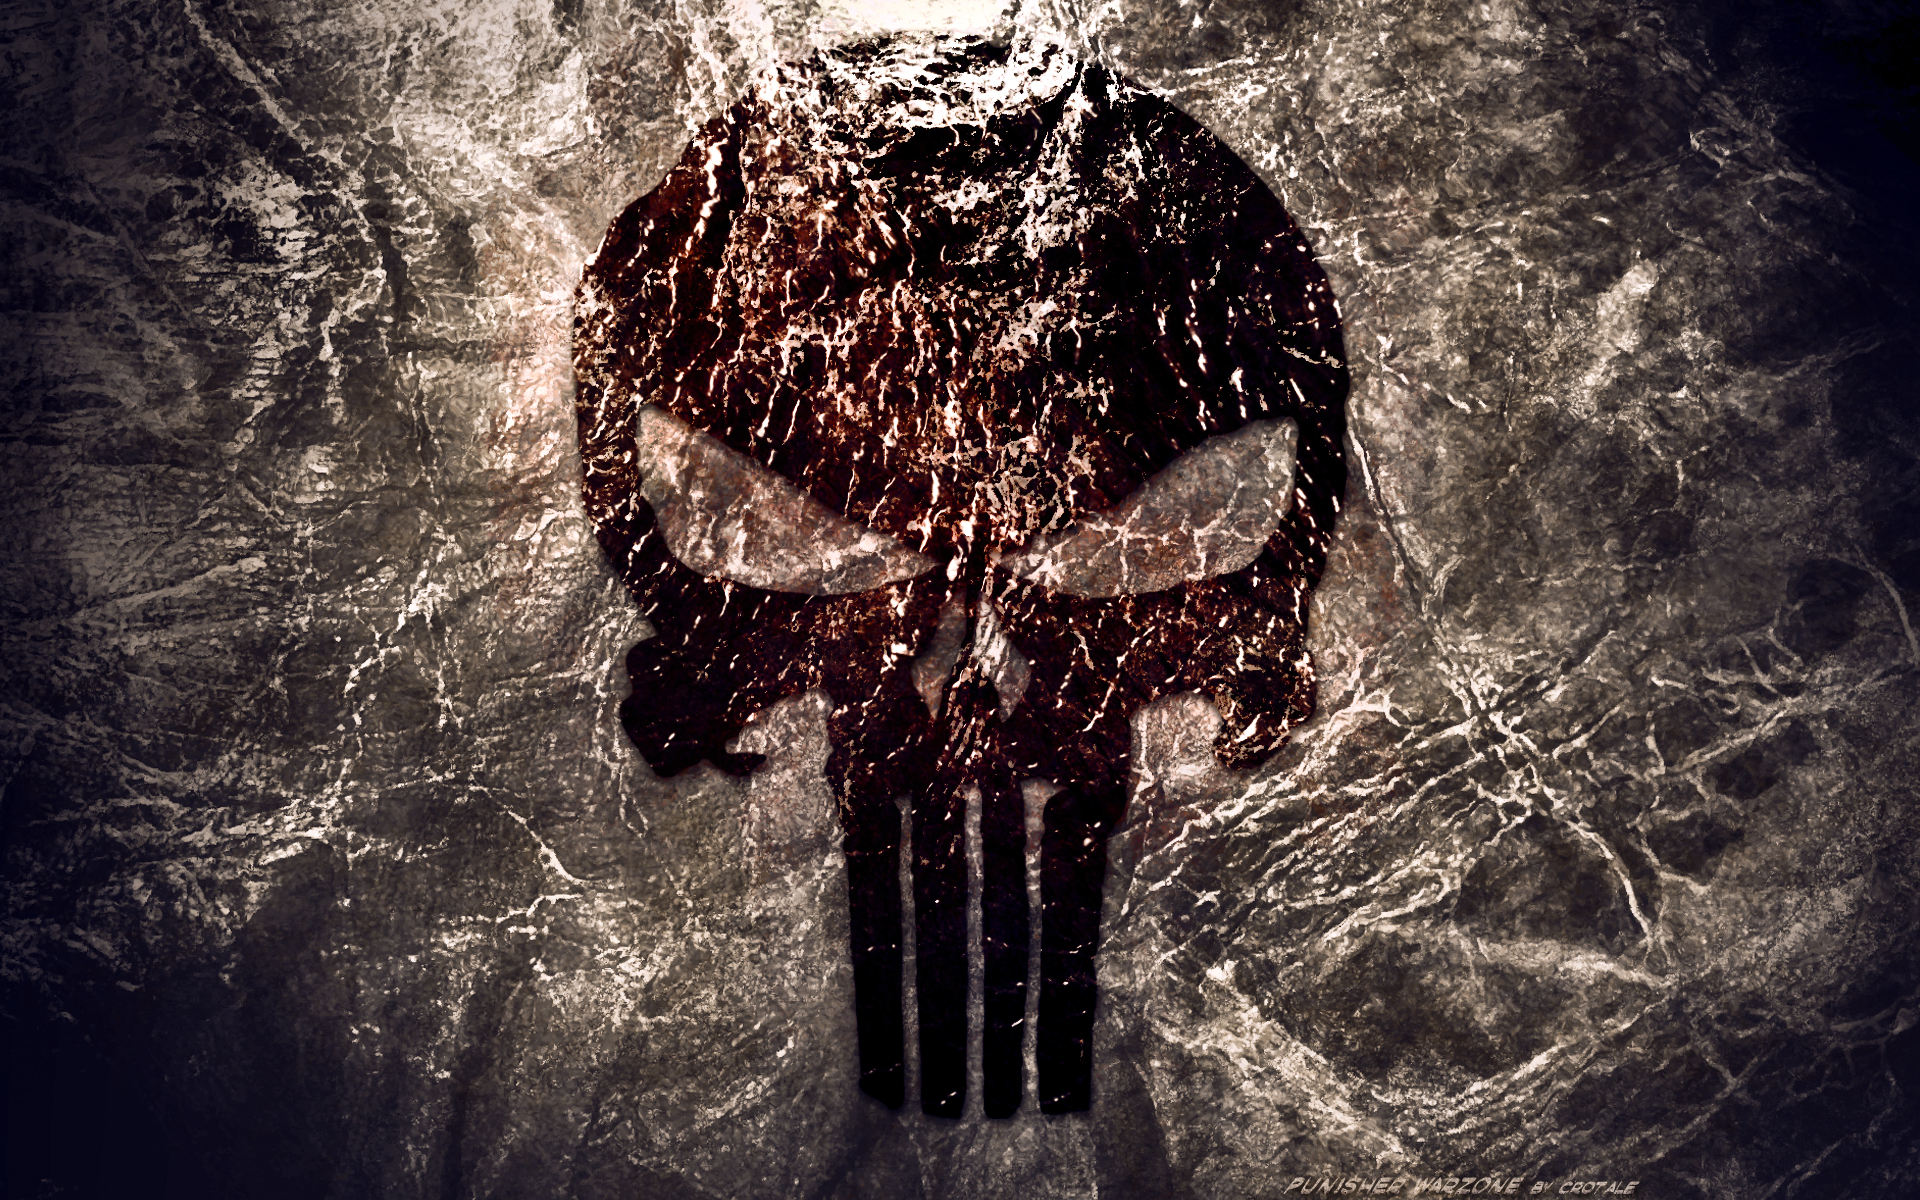 Punisher Background HD Wallpapers 9089 - HD Wallpaper Site